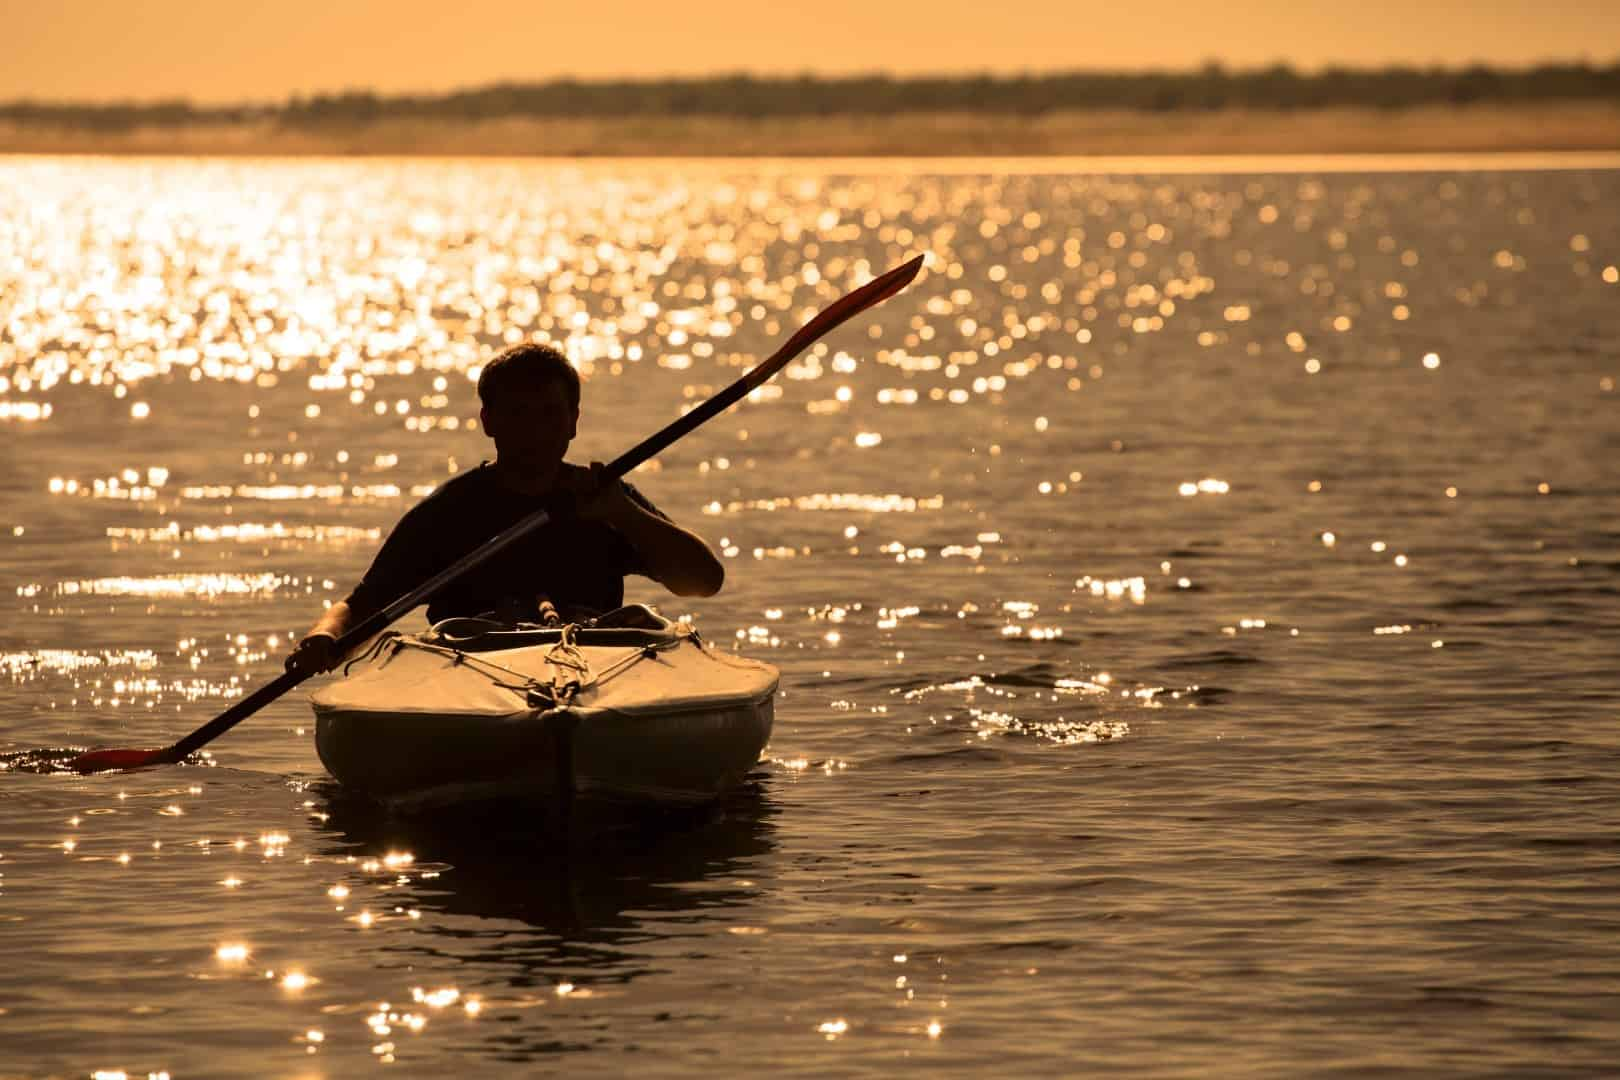 Kayaking for exercise at sunset